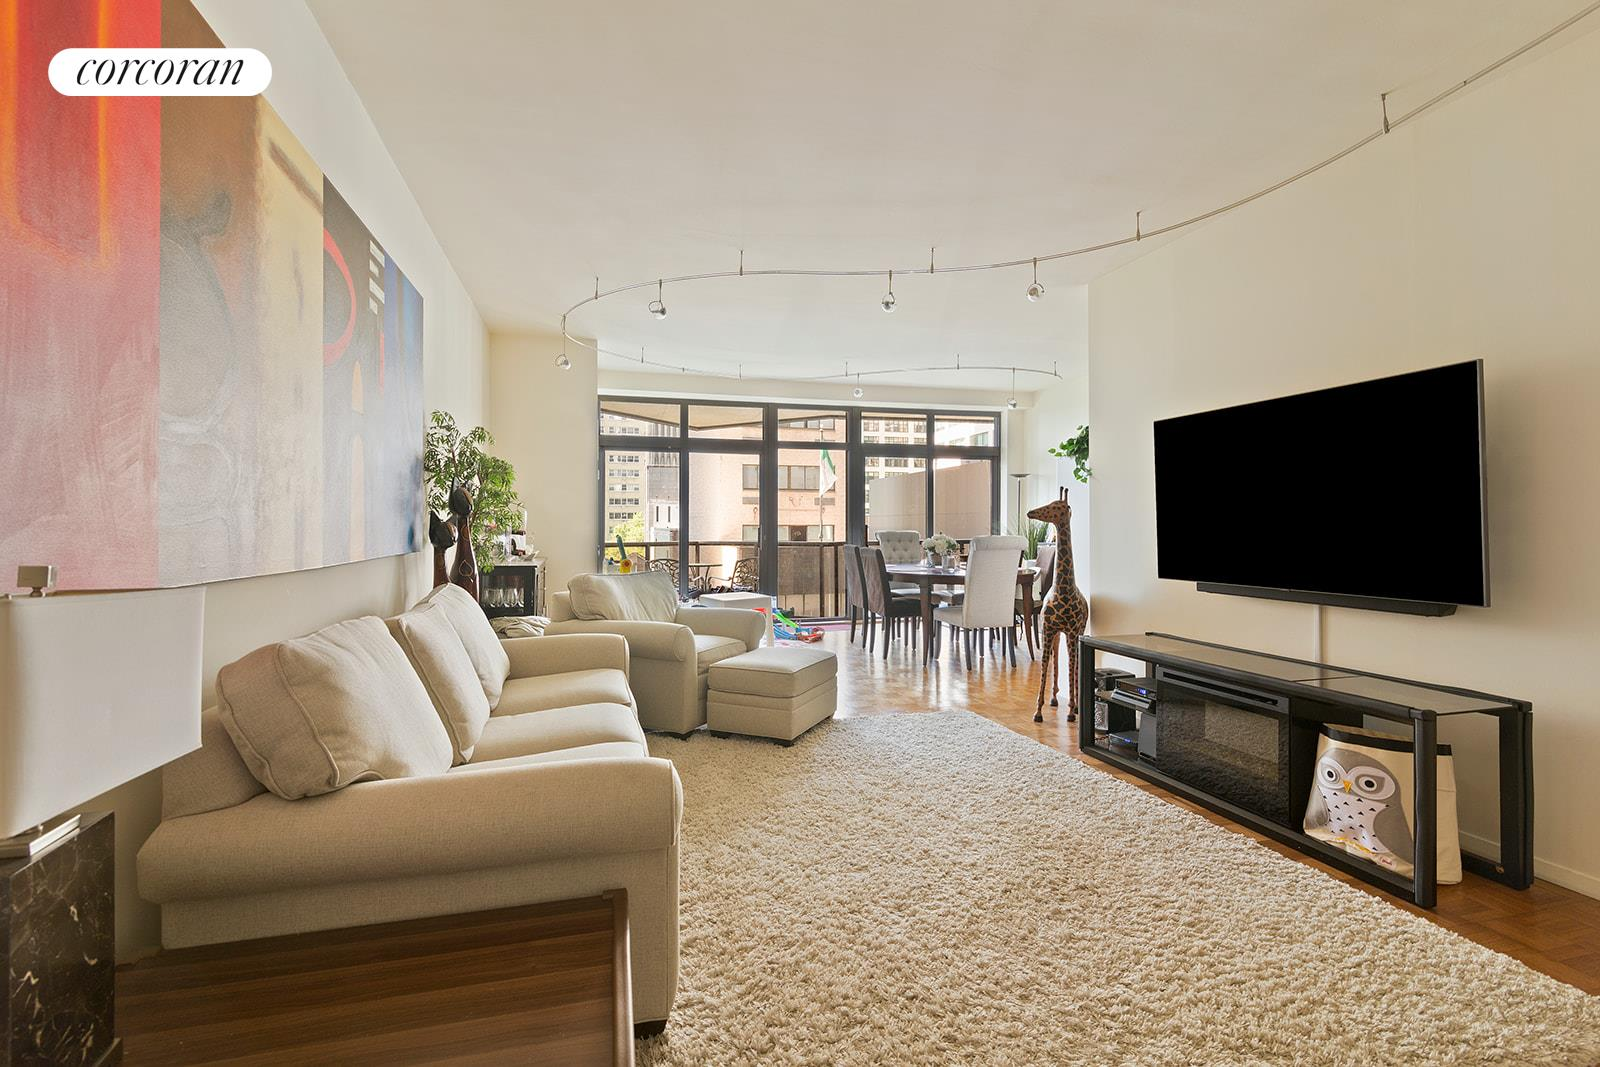 Great Investor Opportunity -- Tenant in place through at least June 30, 2021.Spacious corner unit with 2 bedrooms, 2.5 bathrooms and 2 private balconies available for sale at 100 United Nations Plaza  one of Turtle Bays premier white glove condominiums. This highly desired E line apartment offers a split bedroom layout, three exposures, 9 ceilings and floor-to-ceiling windows in nearly every room. The spacious living room has direct views to the south with access to a private balcony and with a flexible layout to accommodate separate living and dining areas. A wall of floor-to-ceiling windows provide loads of natural light and city views to the south. The windowed kitchen faces west and has full size appliances including a Sub-Zero refrigerator, gas range, dishwasher and microwave. The master bedroom suite has floor-to-ceiling windows including a sliding glass door to the second, north-facing private balcony. There is also a very large walk-in closet and en suite marble bathroom with a Jacuzzi bathtub. The south-facing second bedroom is equally as large and has its own en suite marble bathroom and two closets. This unit also has central heat and A/C and guest powder room.Located on East 48th Street and First Avenue, 100 United Nations Plaza is a white-glove, full service condominium in Manhattan's Turtle Bay neighborhood. Greeting residents with beautifully landscaped gardens and waterfalls, this impeccably run building offers a 24-hour doorman, valet and concierge service, on-site management office, renovated lobby and resident's lounge, common laundry room, fitness center and direct access to a 24-hour attended parking garage. Conveniently located to transportation and many great shops and restaurants.